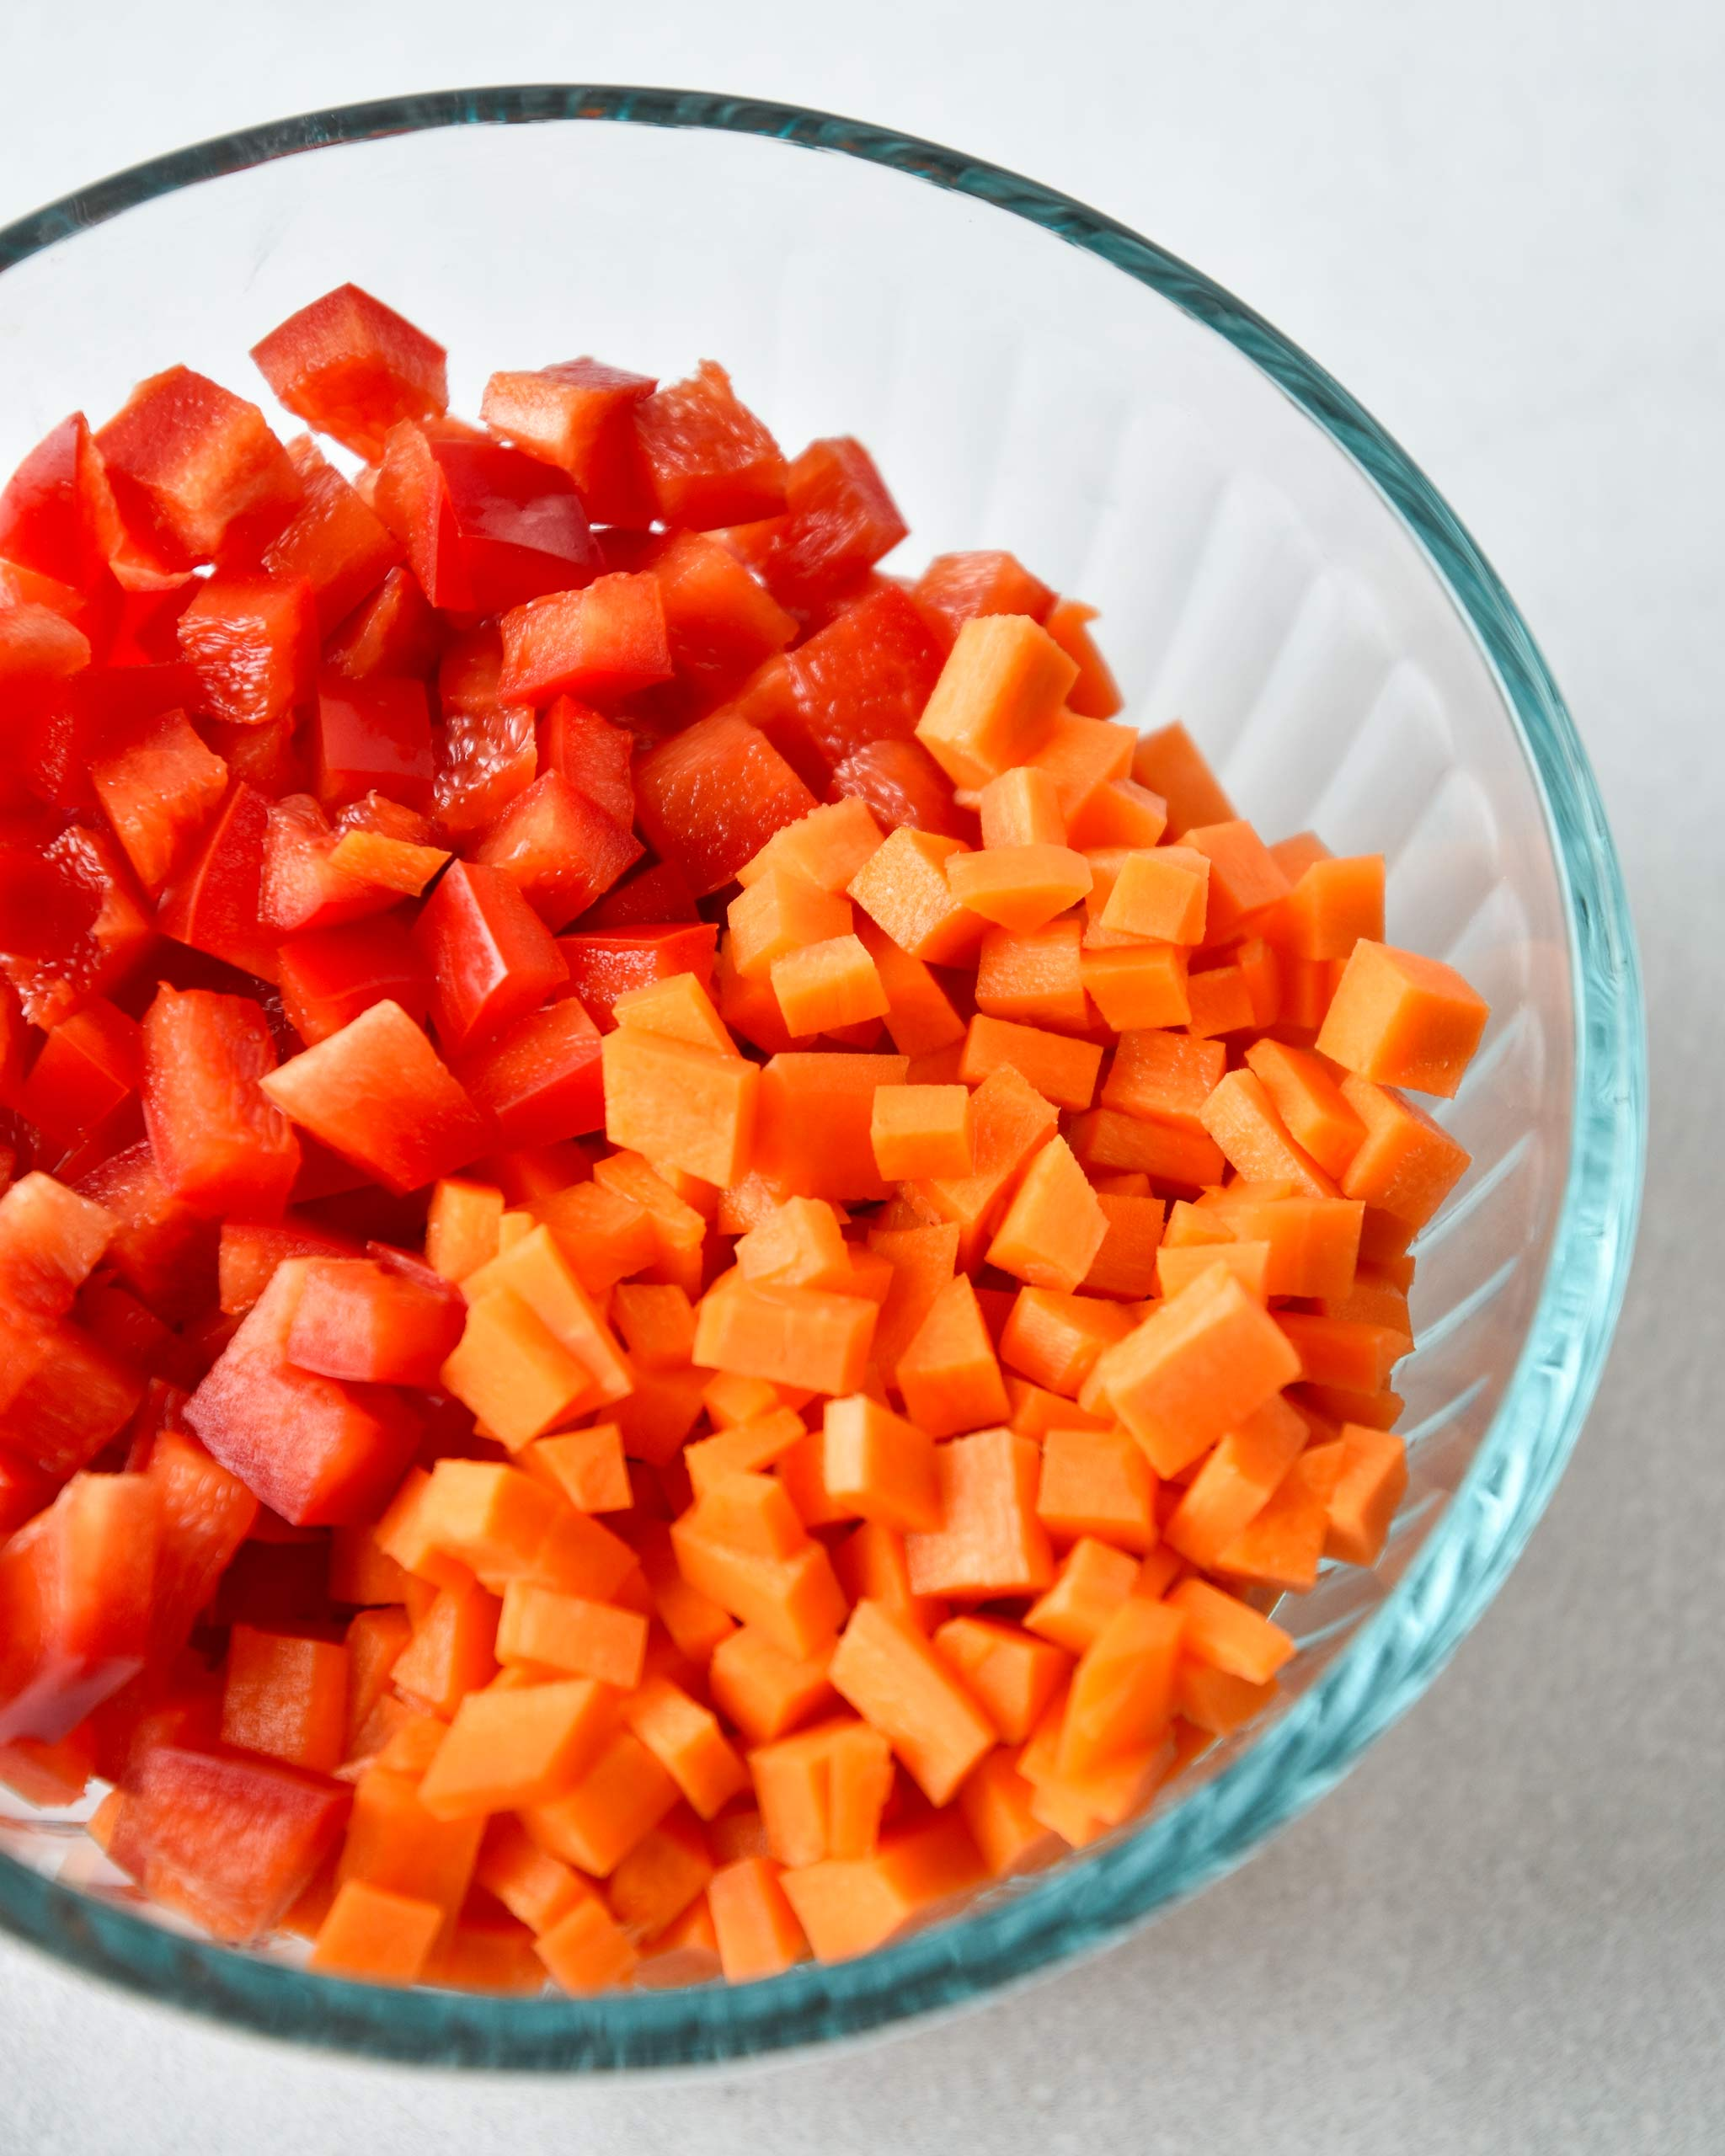 red bell peppers and carrots chopped up for the recipe